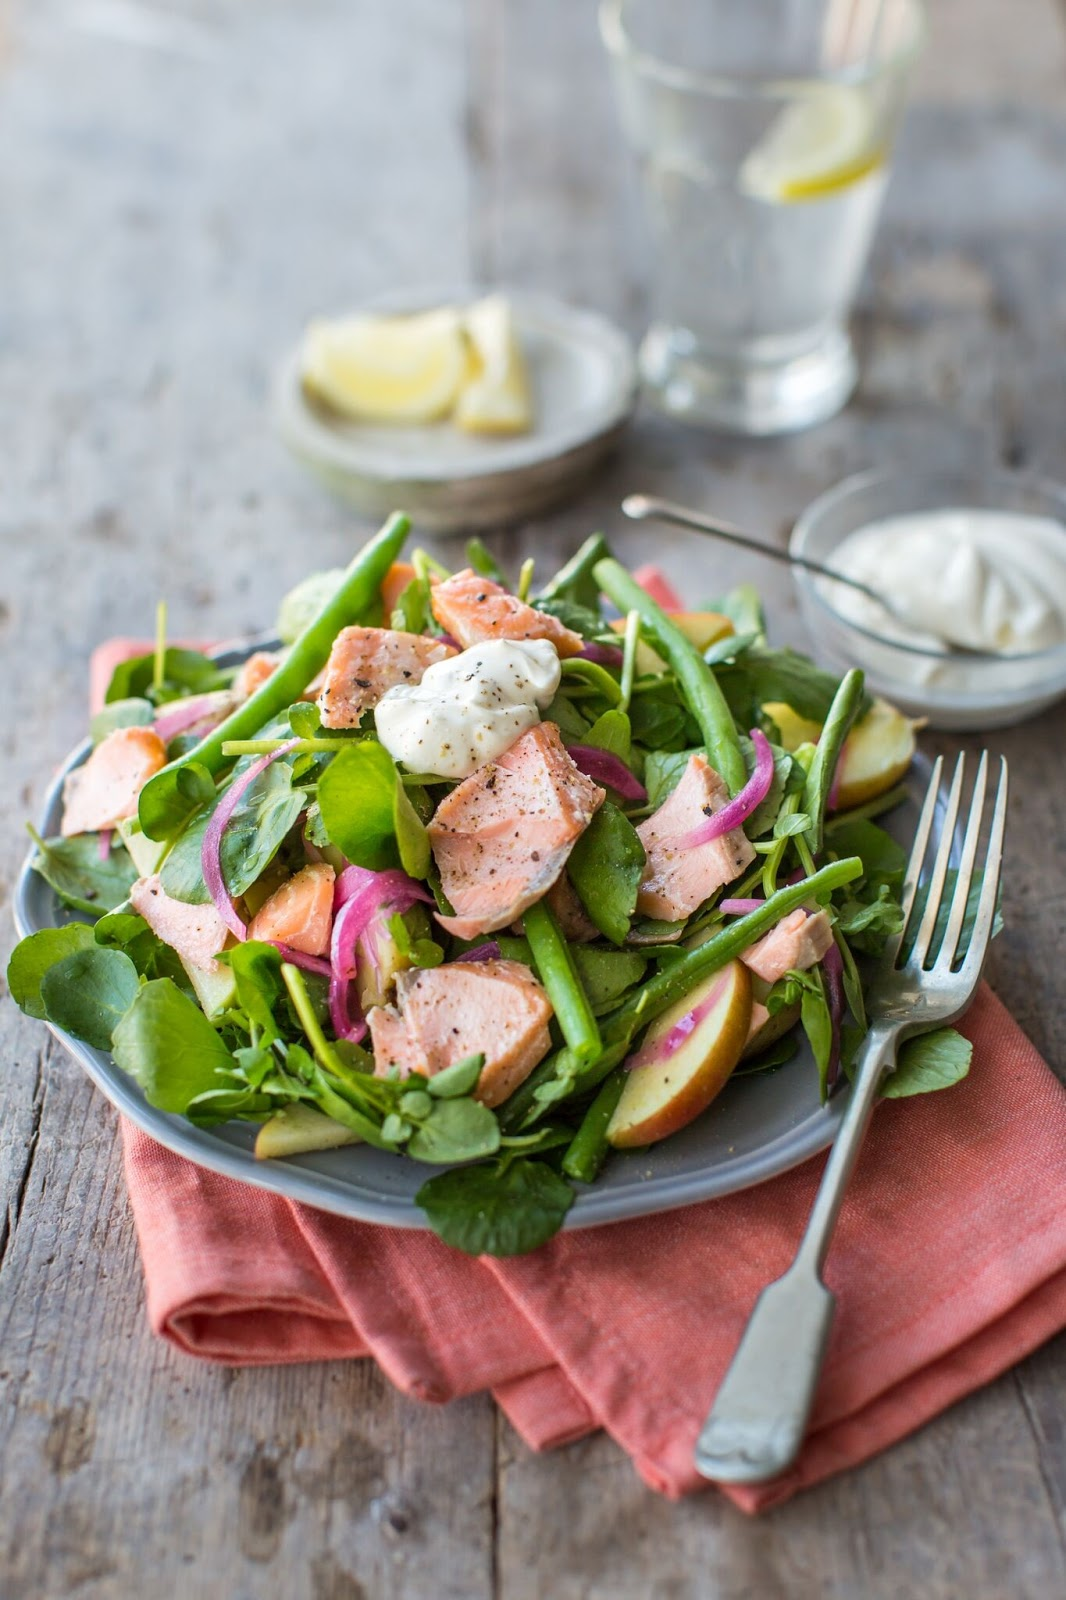 Hot-Smoked Salmon And Watercress Salad With Apple, Green Beans And Crème Fraiche